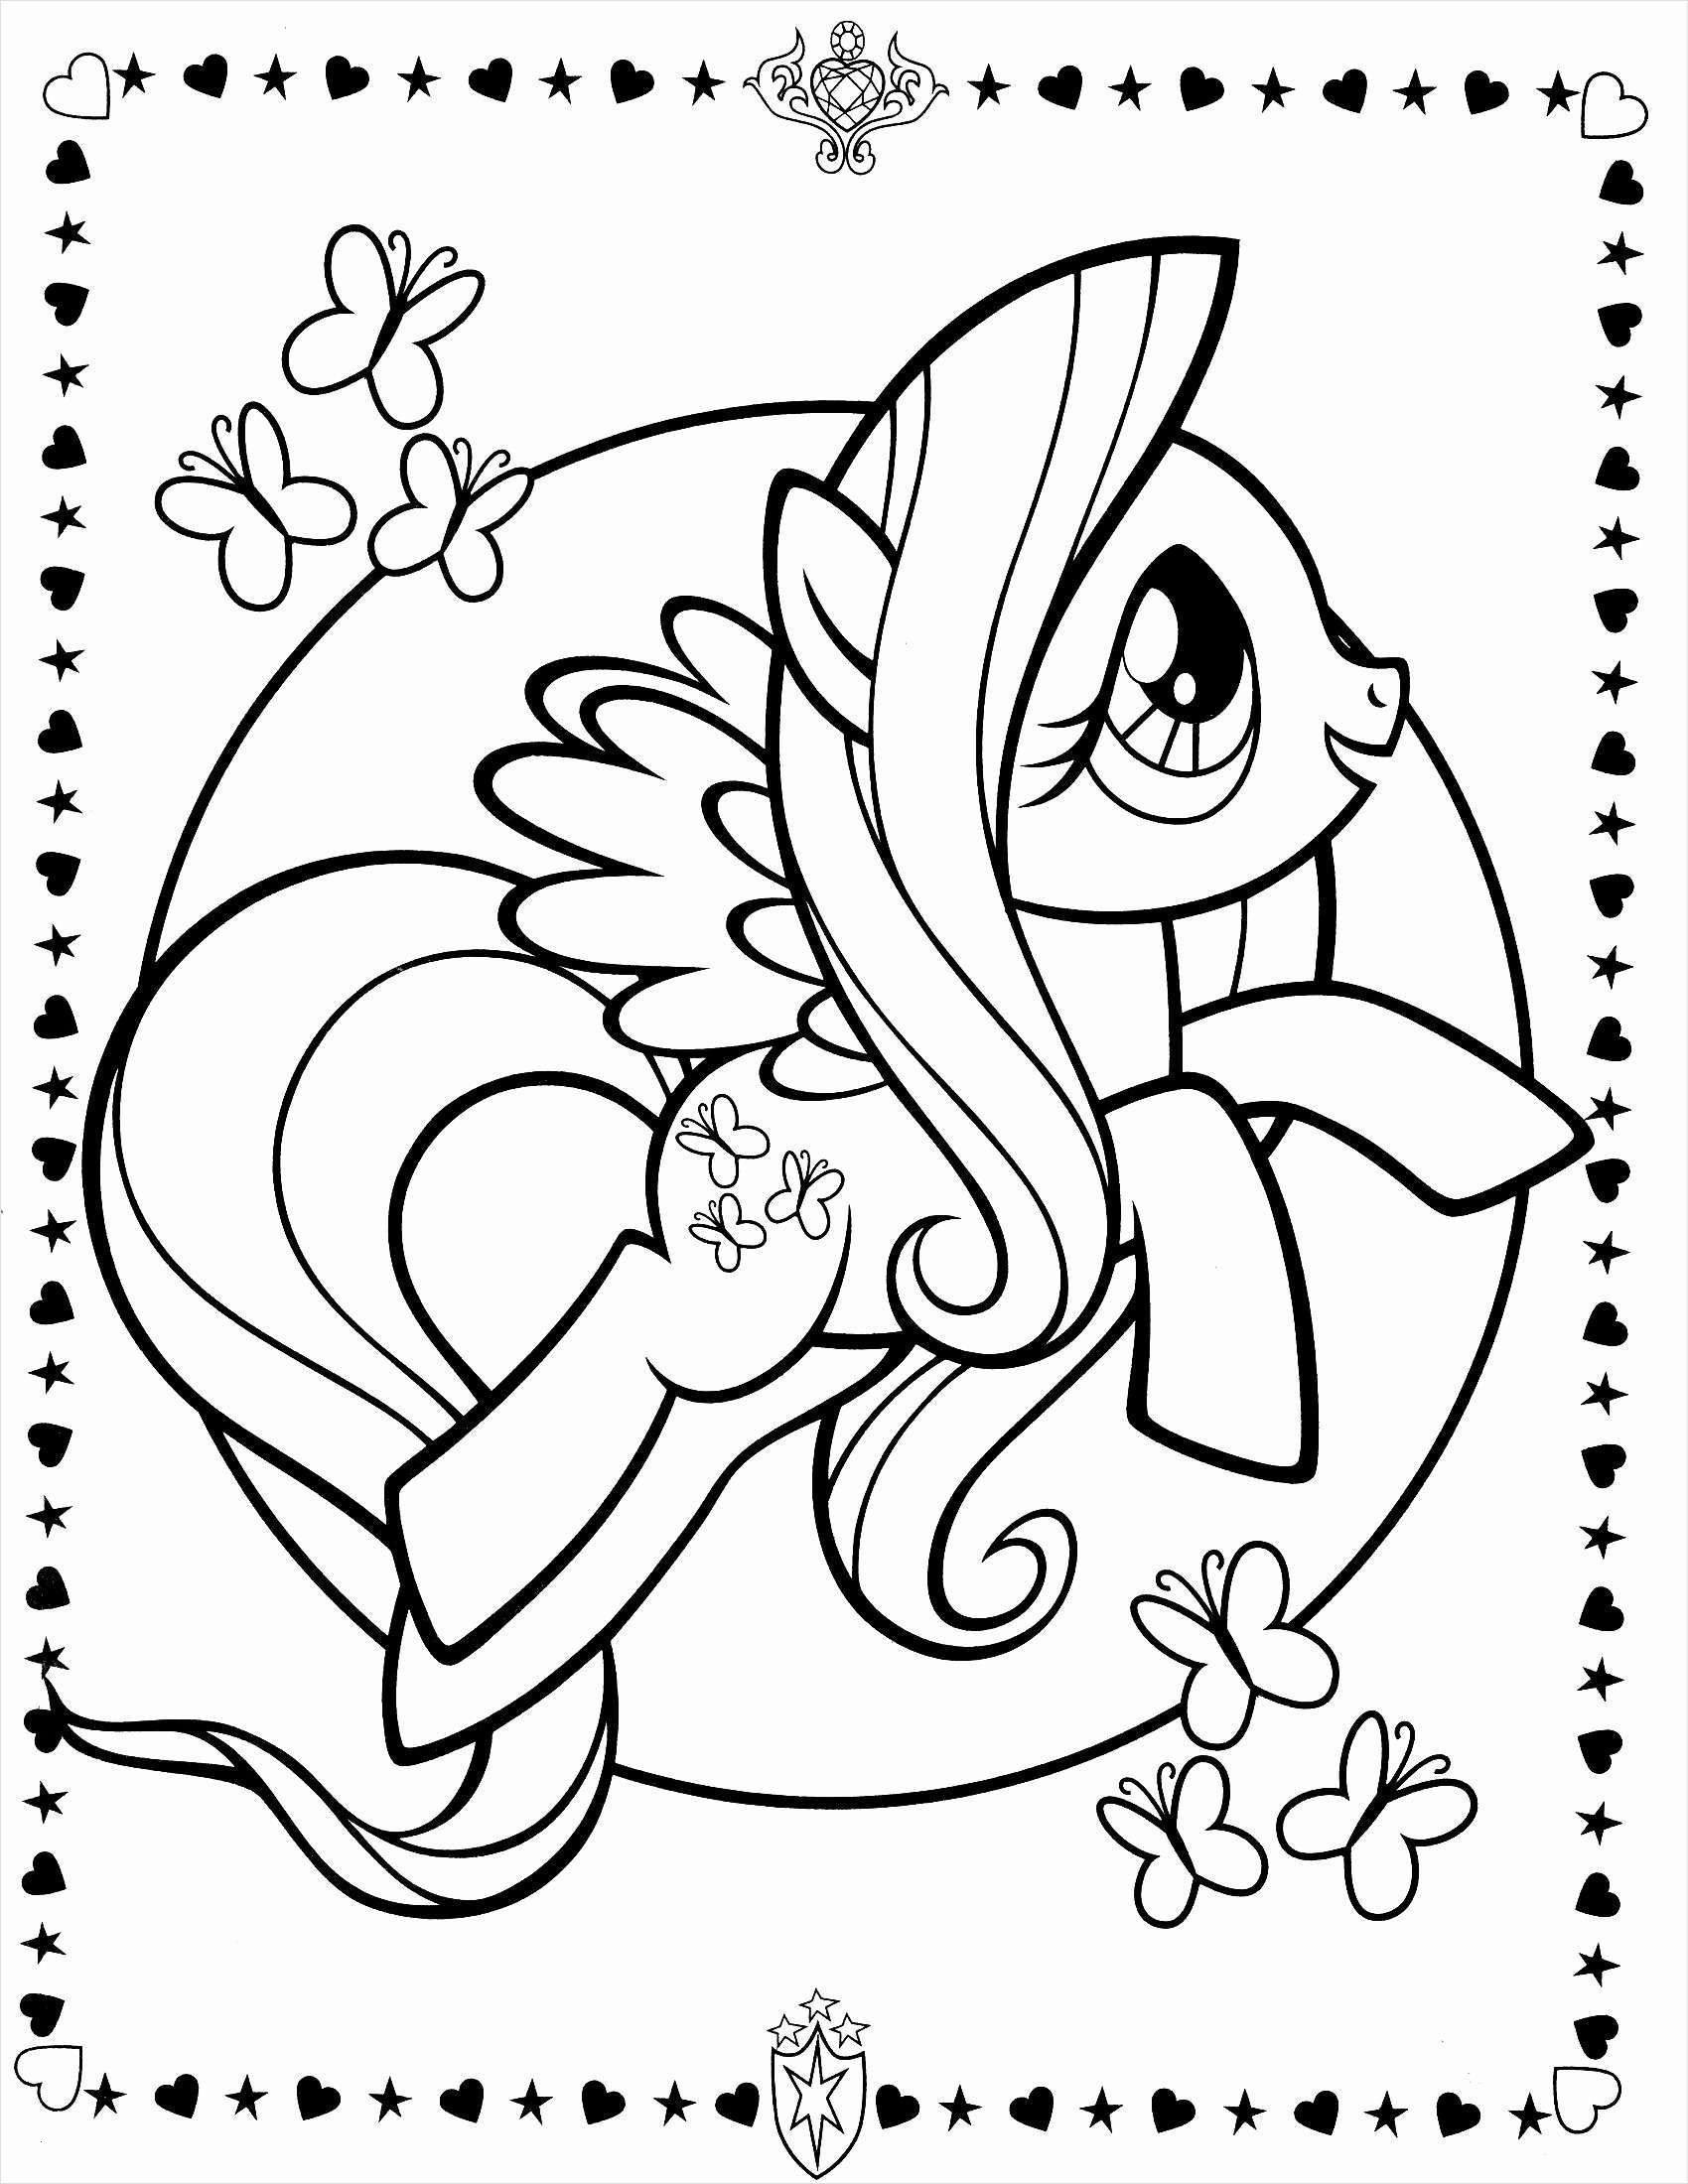 Ausmalbilder My Little Pony Equestria Das Beste Von Mlp Coloring Pages Equestria Girls Printable My Little Pony Stock